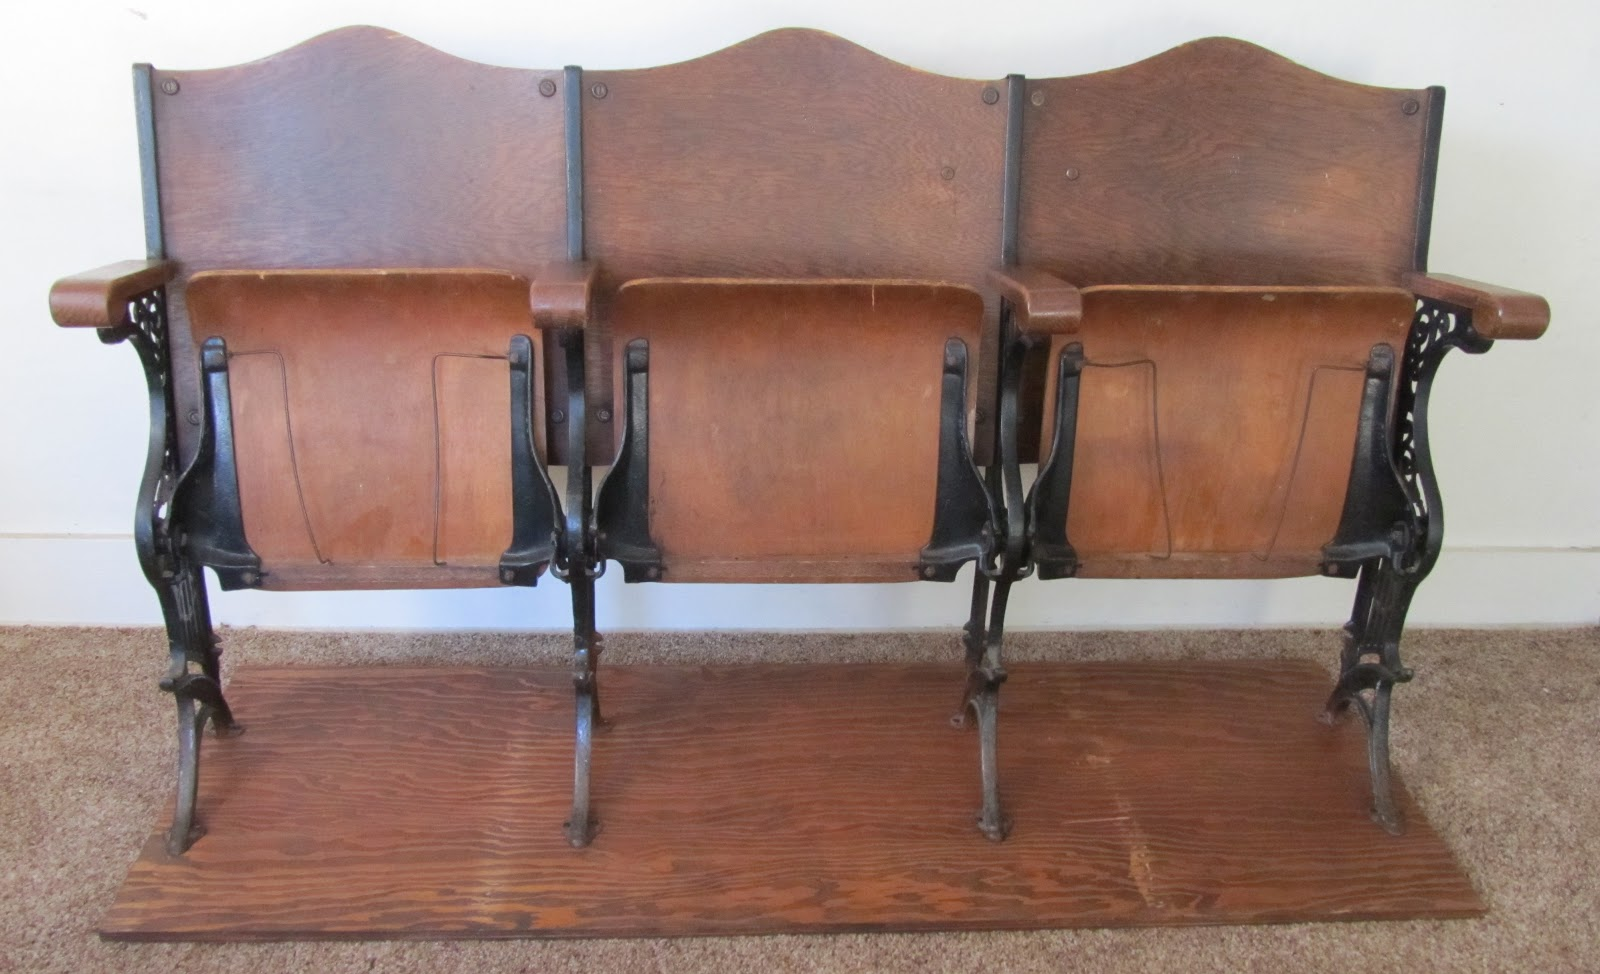 3 tandem antique theater seats dimensions long x tall x deep for sale at vdc 200